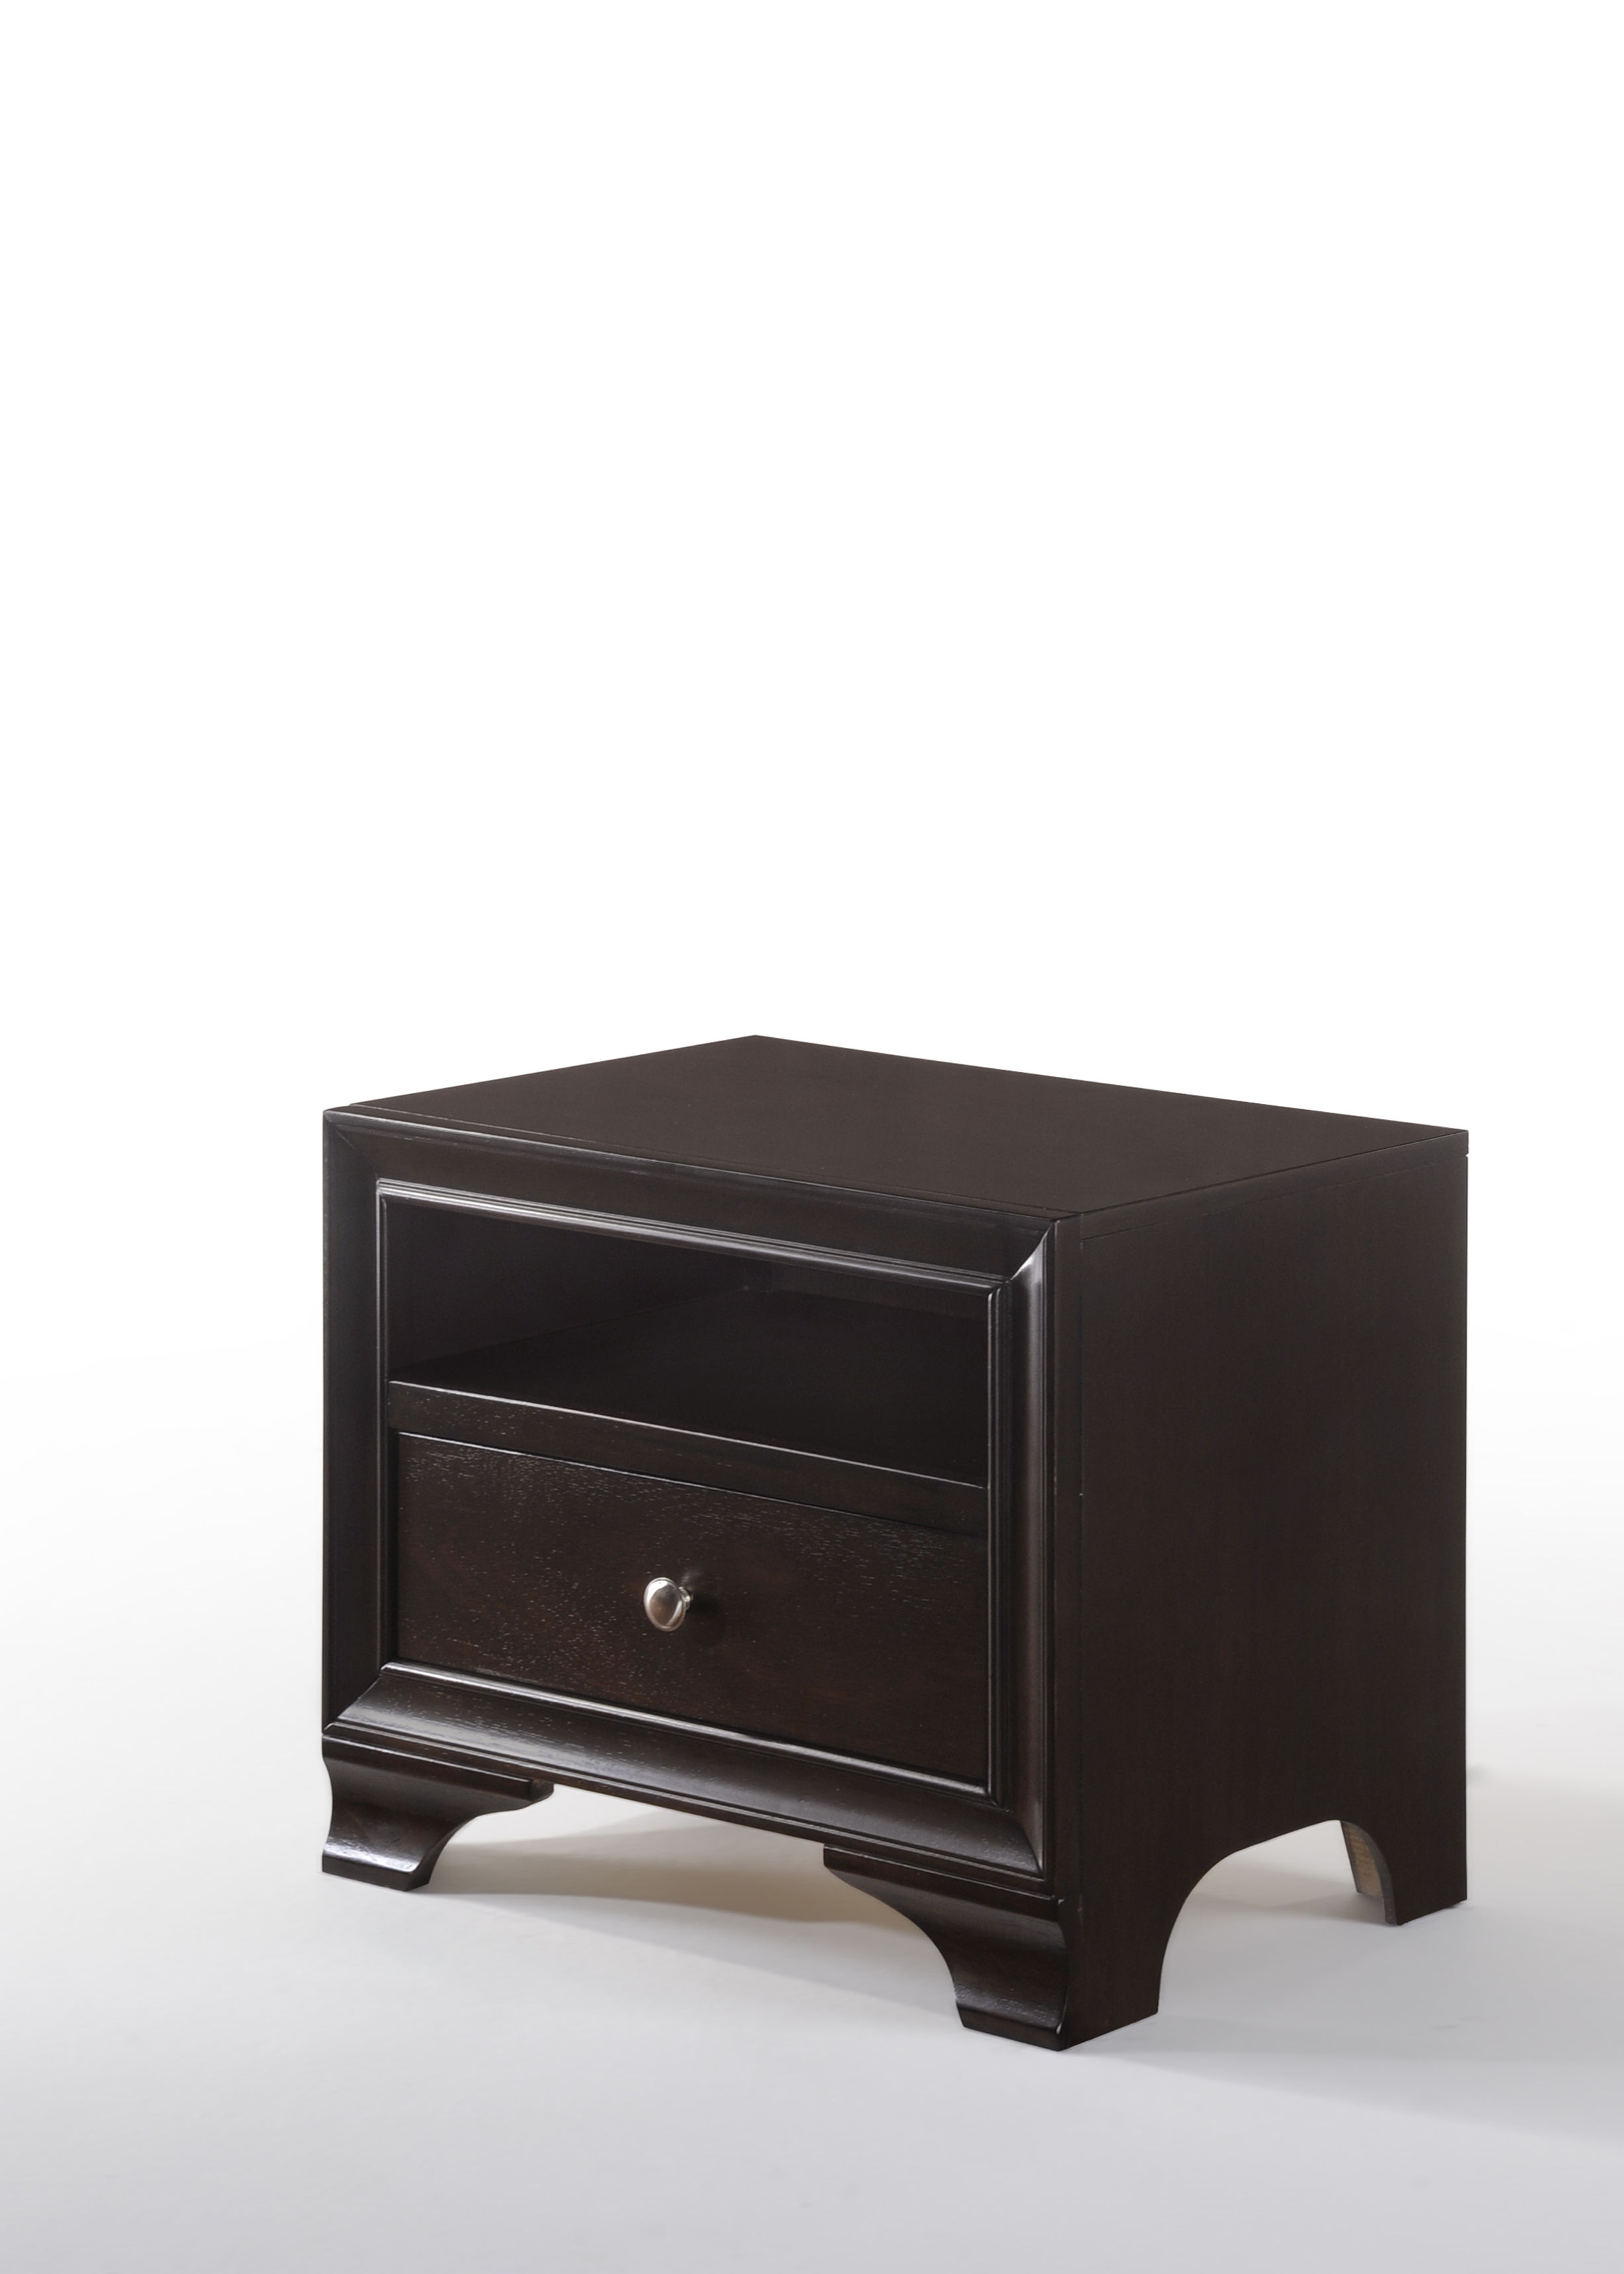 Acme Furniture Blaise Espresso One Drawer Nightstand